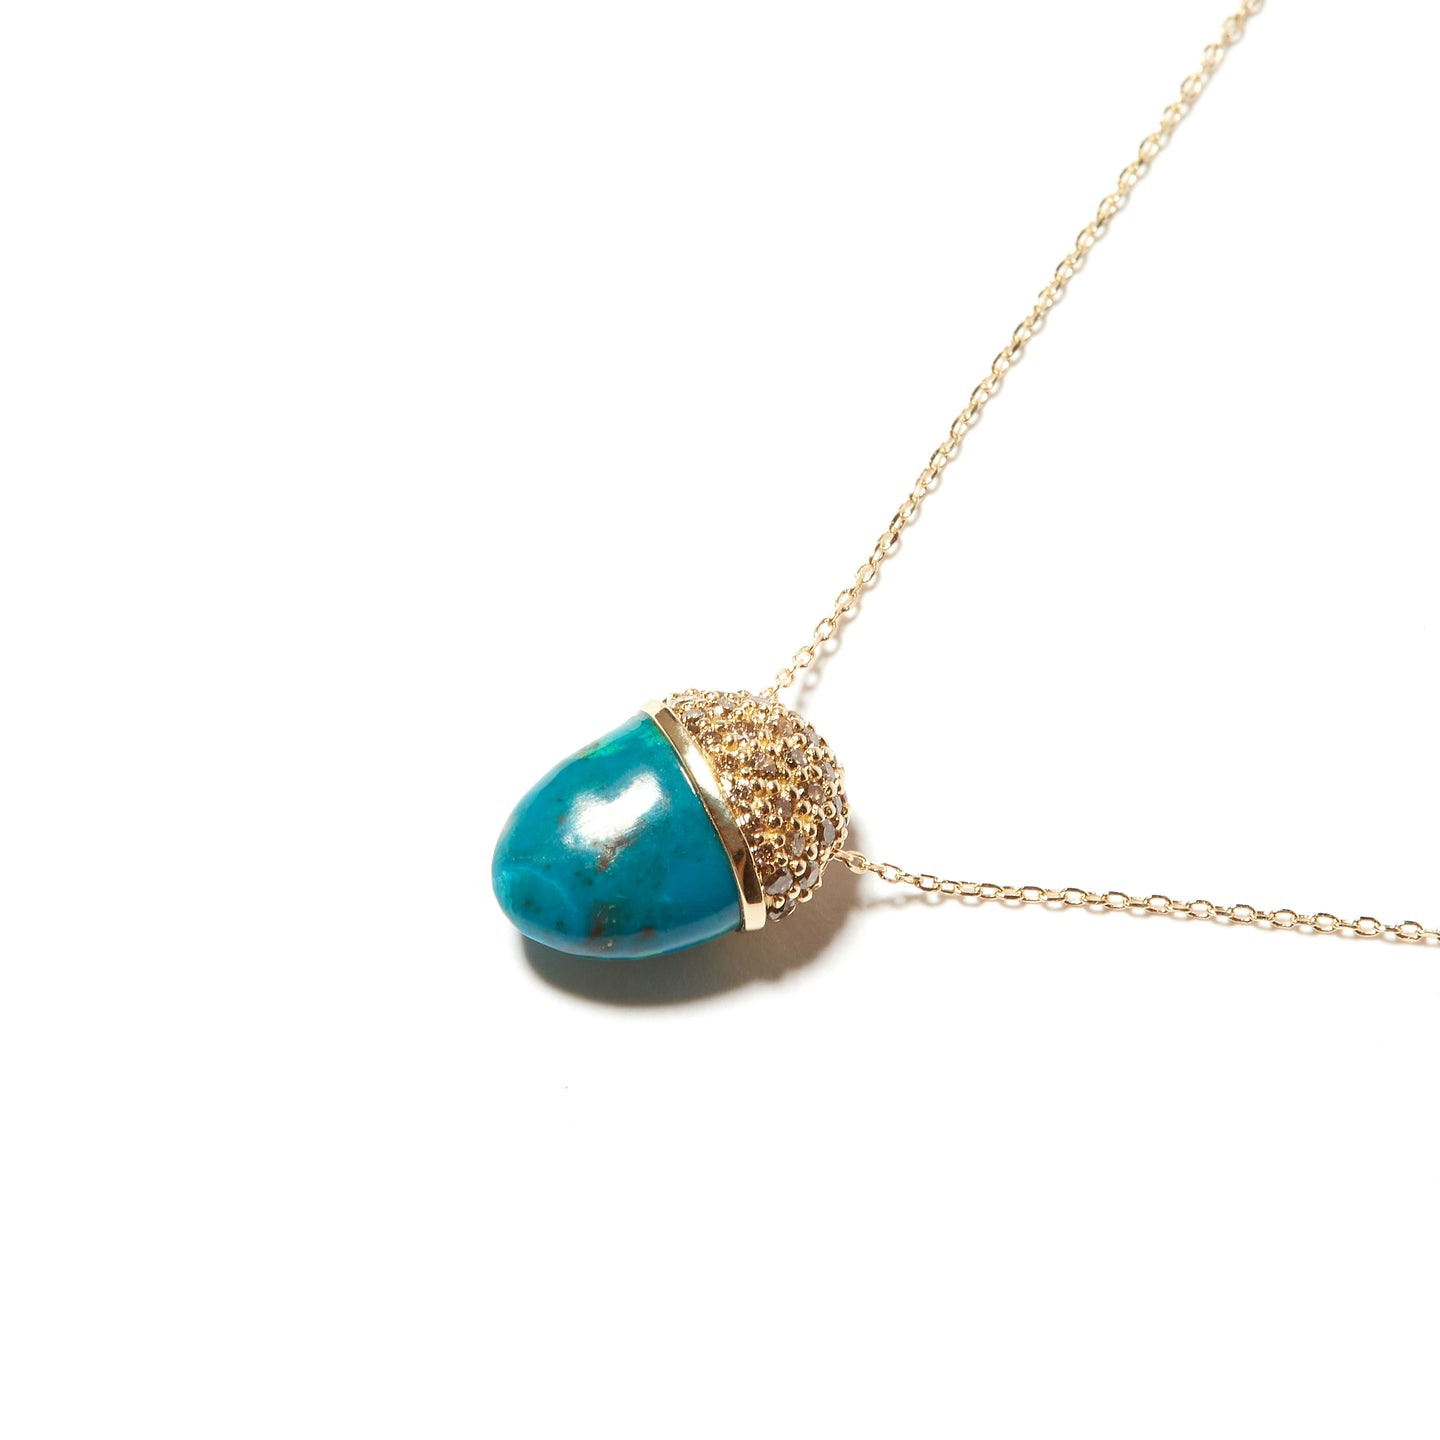 Found Cap Pendant Necklace - Chrysocolla & Brown Diamond